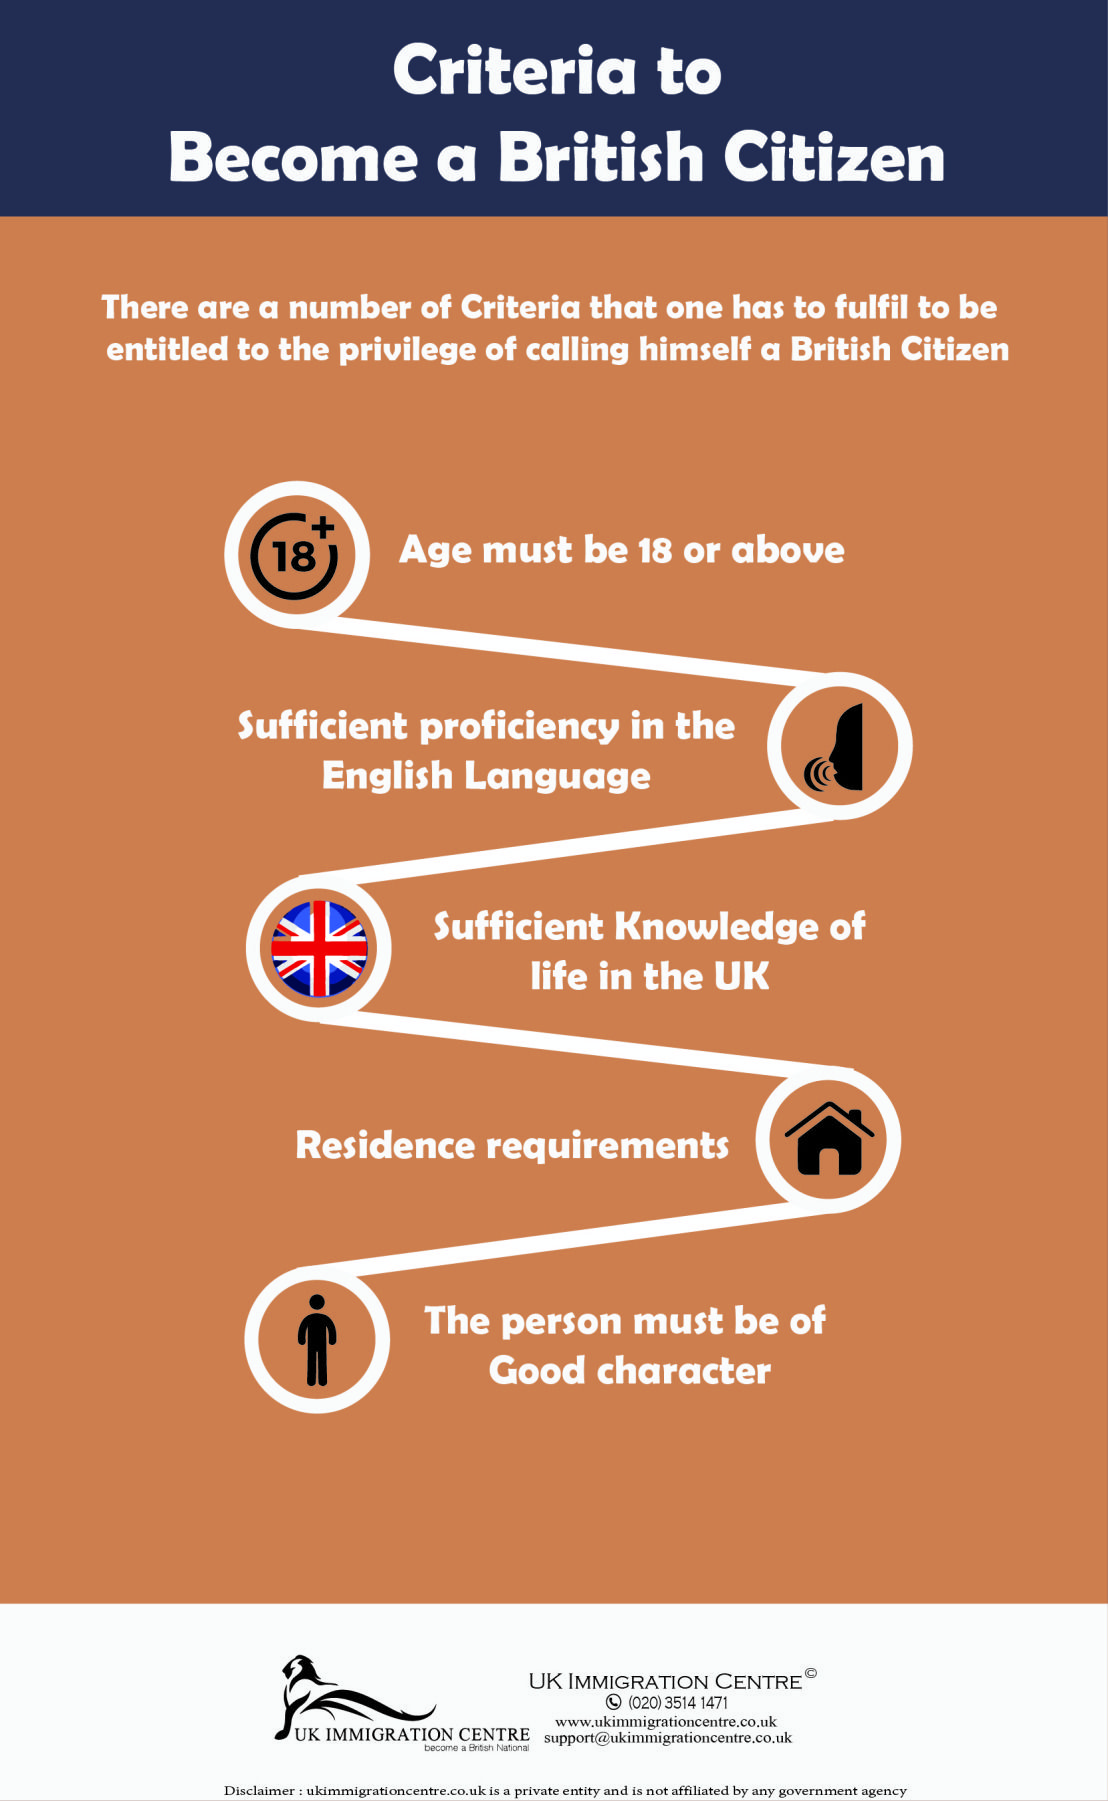 Criteria to Become a British Citizen | Pinterest | Citizenship ... on